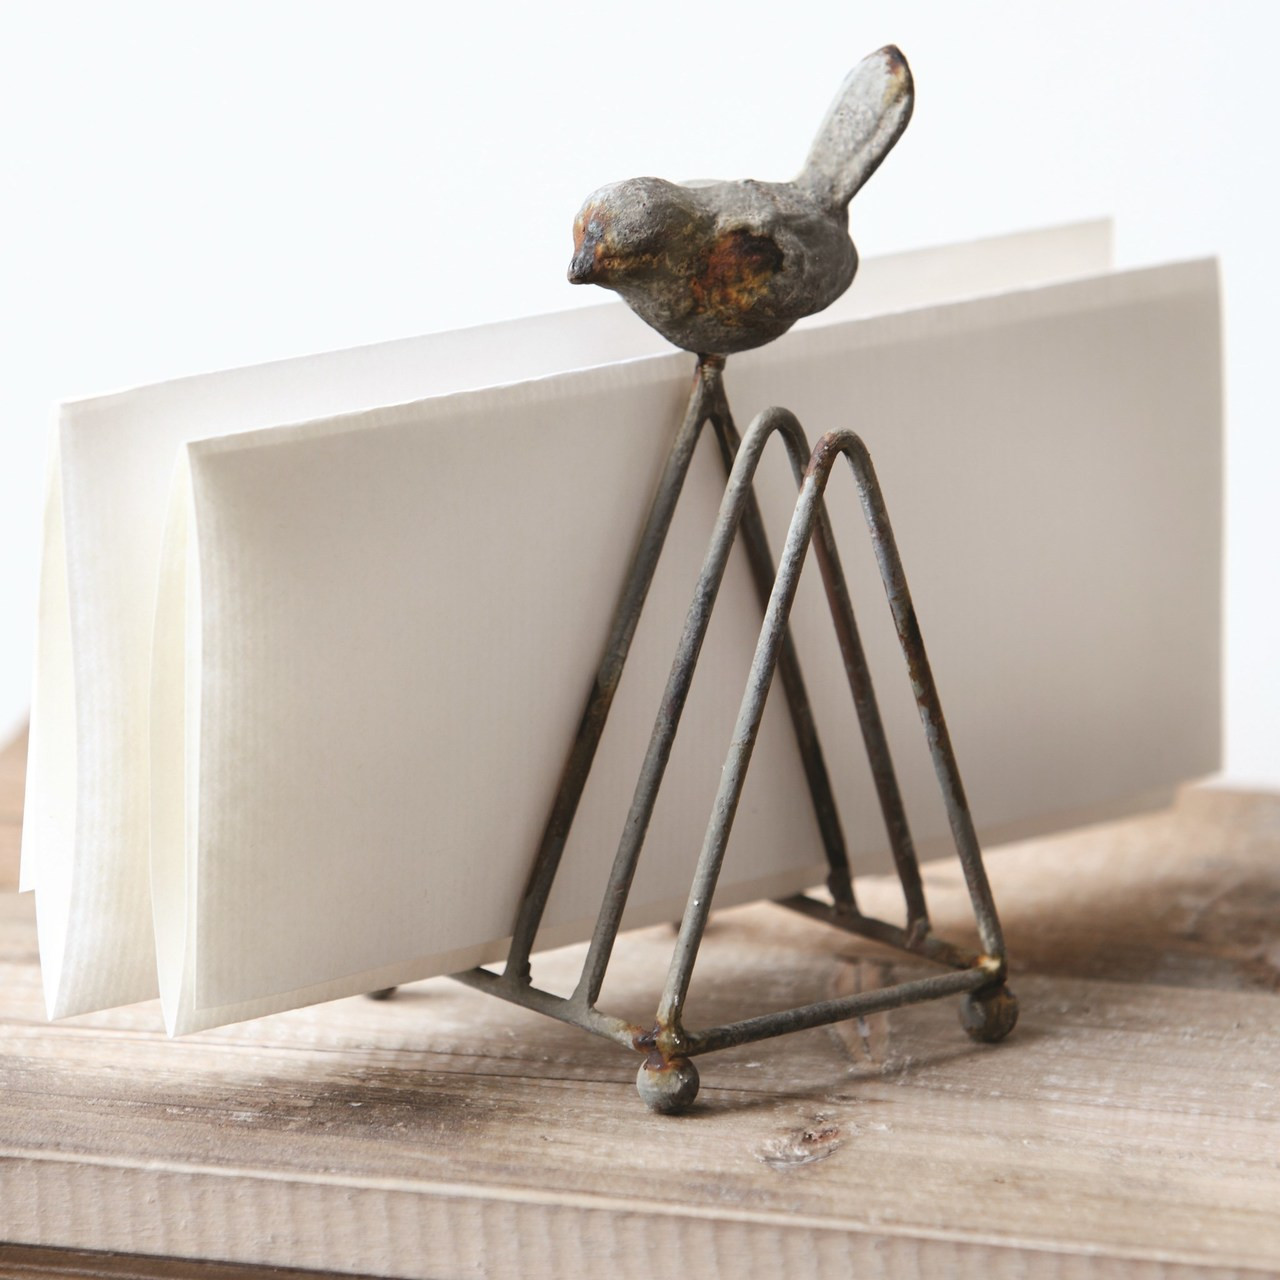 Metal Letter Holder with Bird